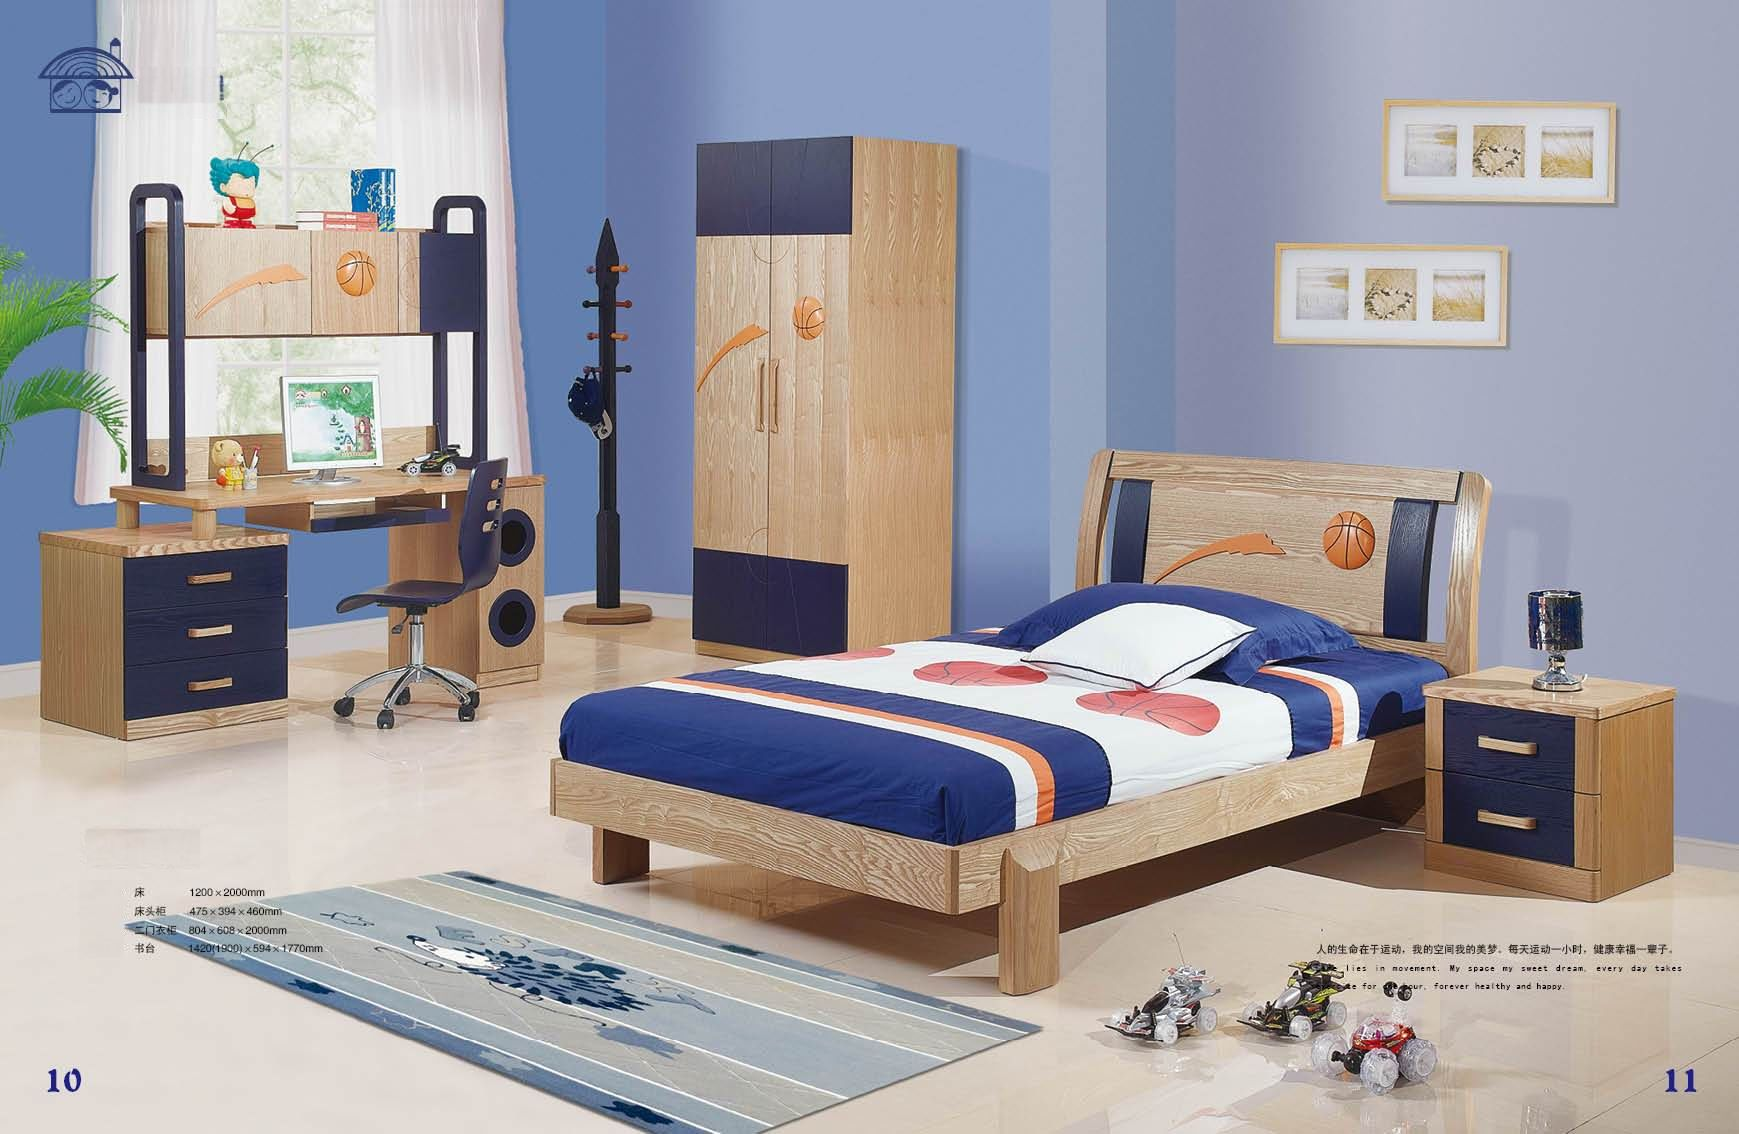 Kids bed furniture - Youth Bedroom Furniture Kids Bedroom Set Jkd 20120 China Kids